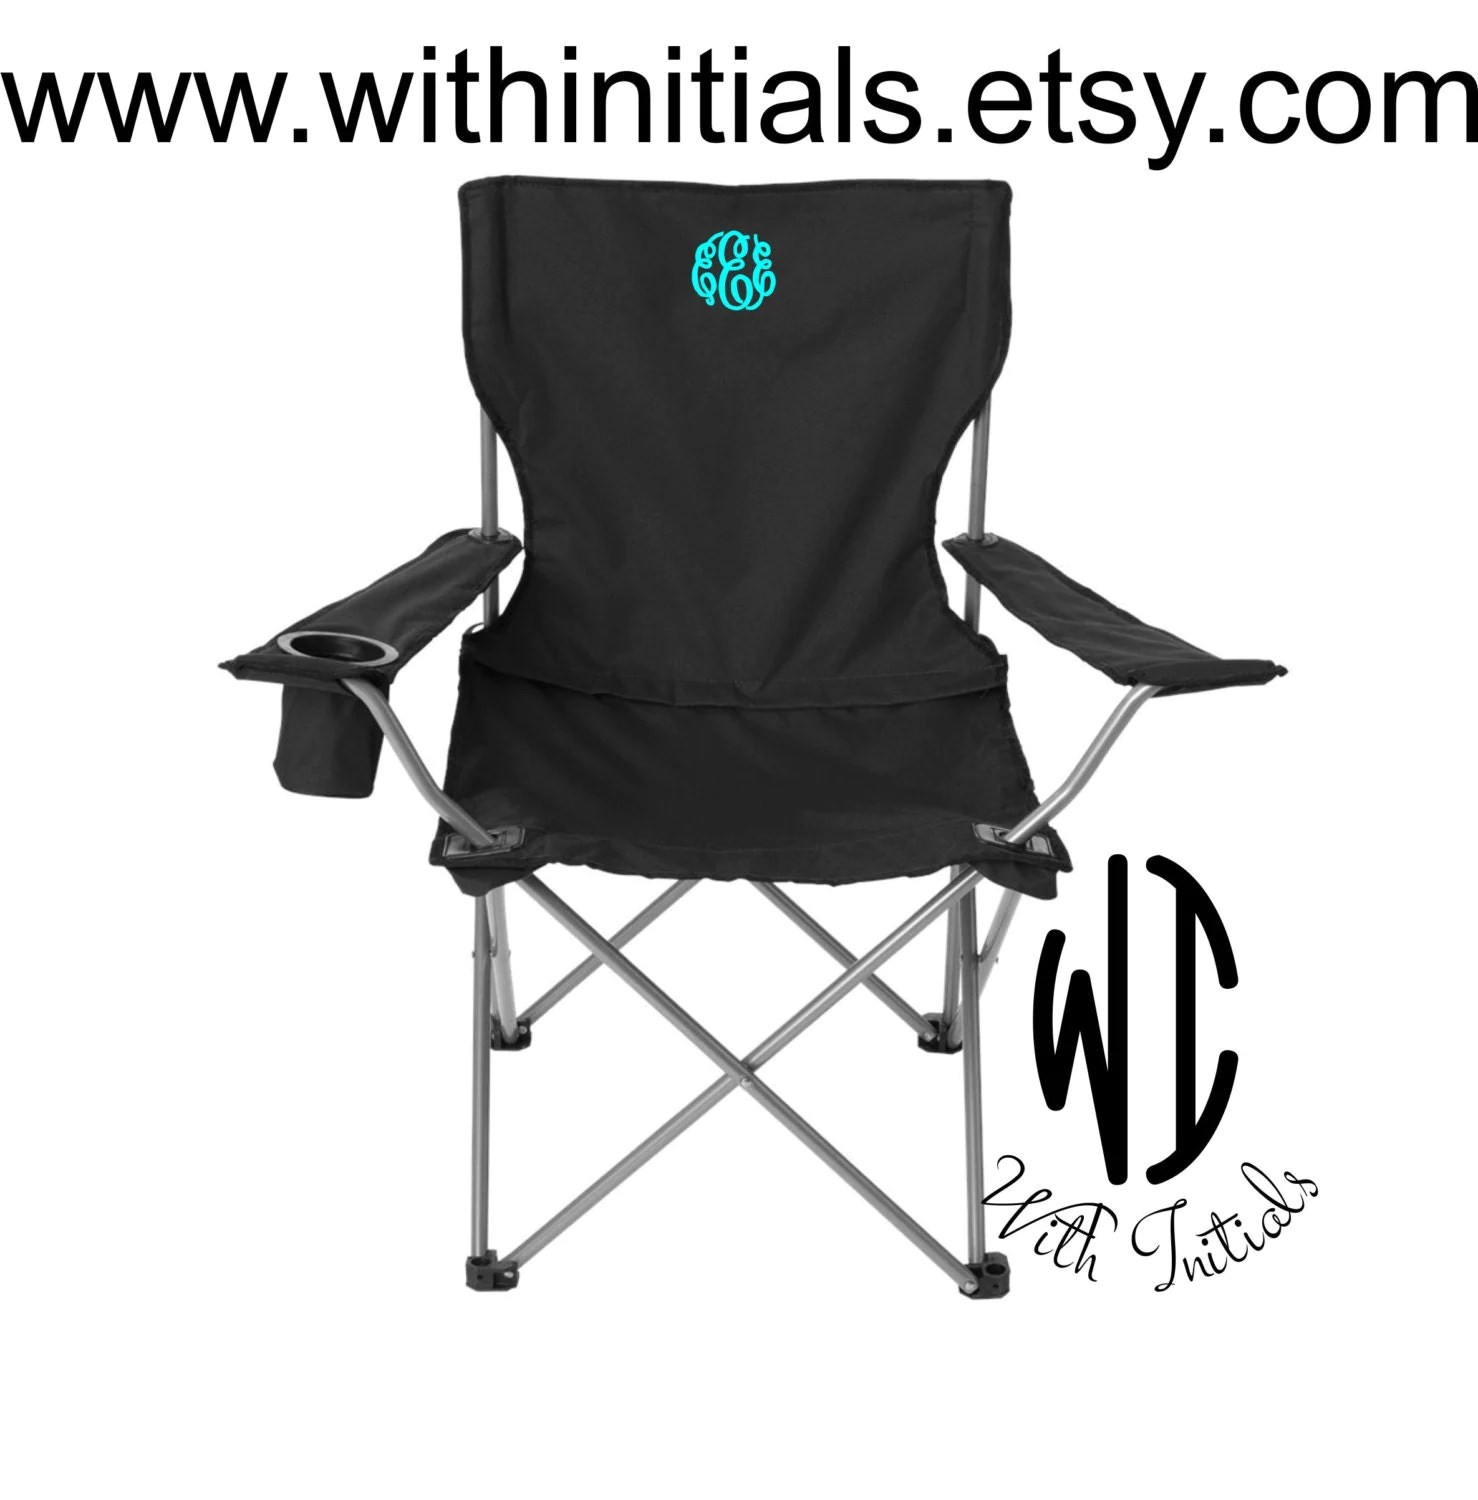 personalized folding chair jet 3 ultra power monogrammed camping tailgating ballgame